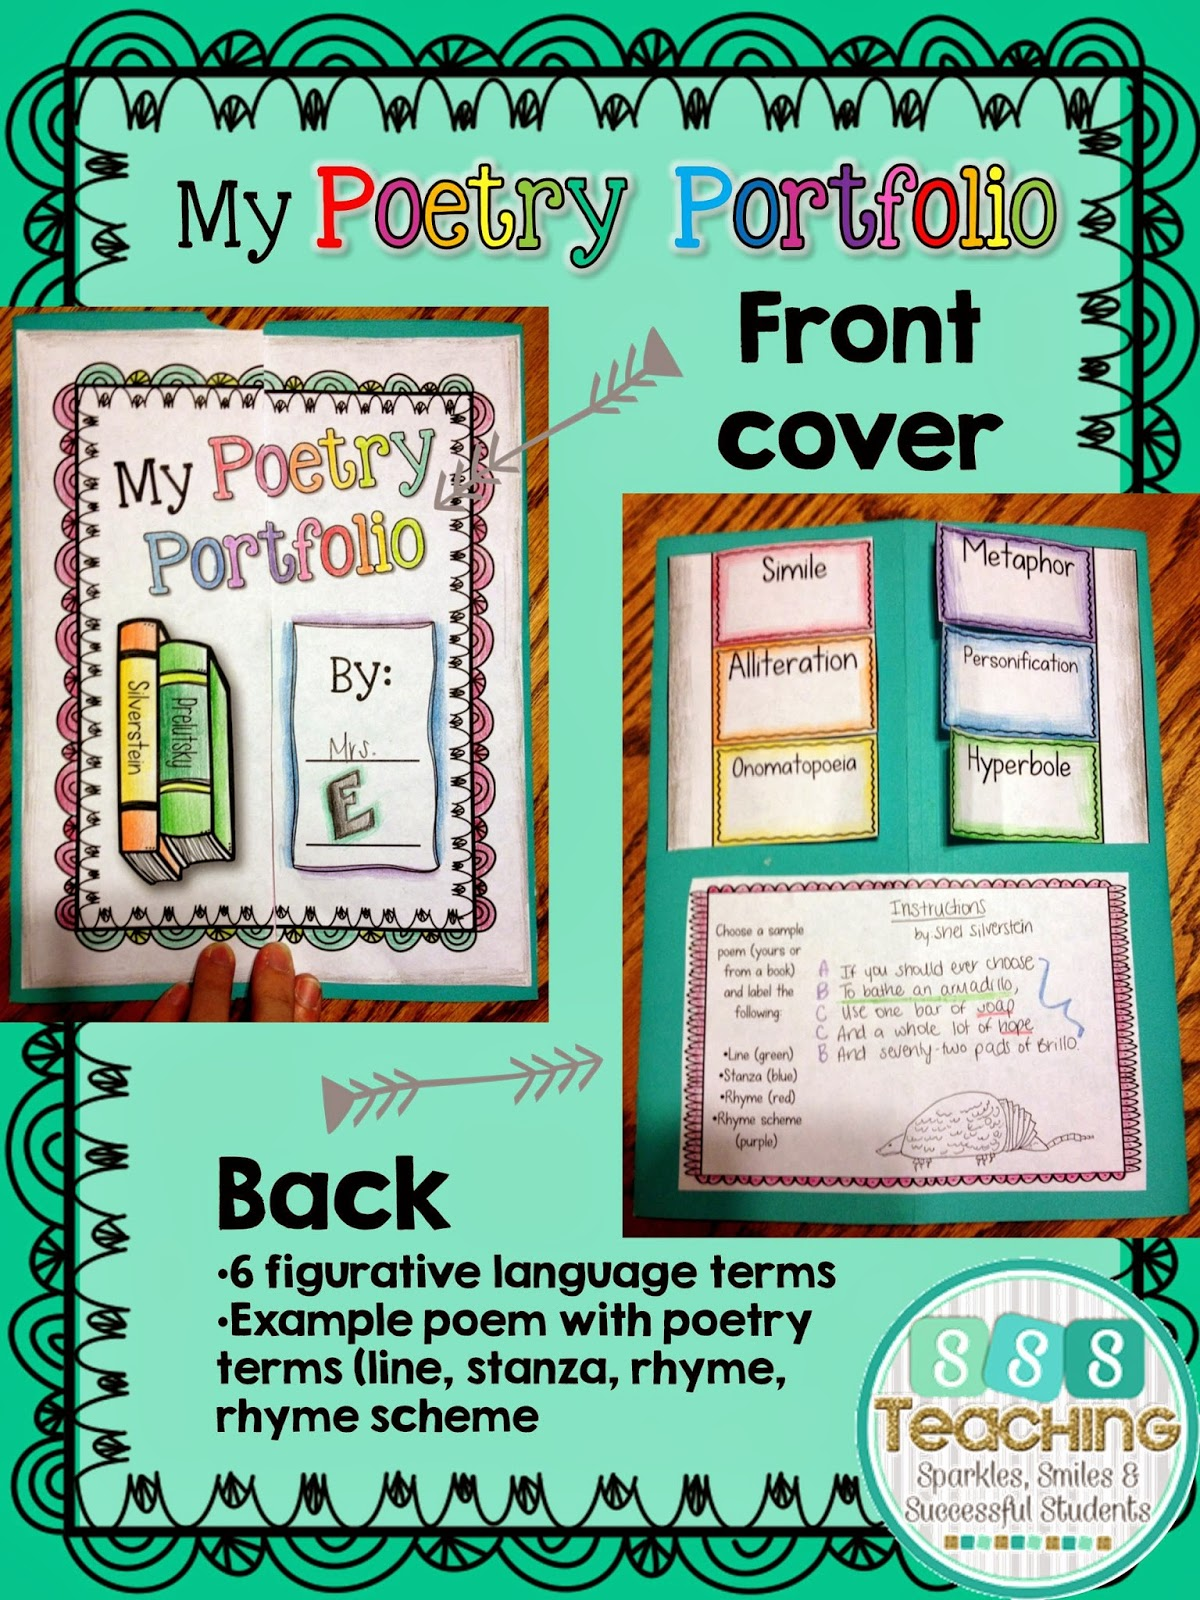 poetry portfolio lapbook assessment sssteaching the front cover is easy to color for each student the back contains a foldable to show what students know of 6 common figurative language terms